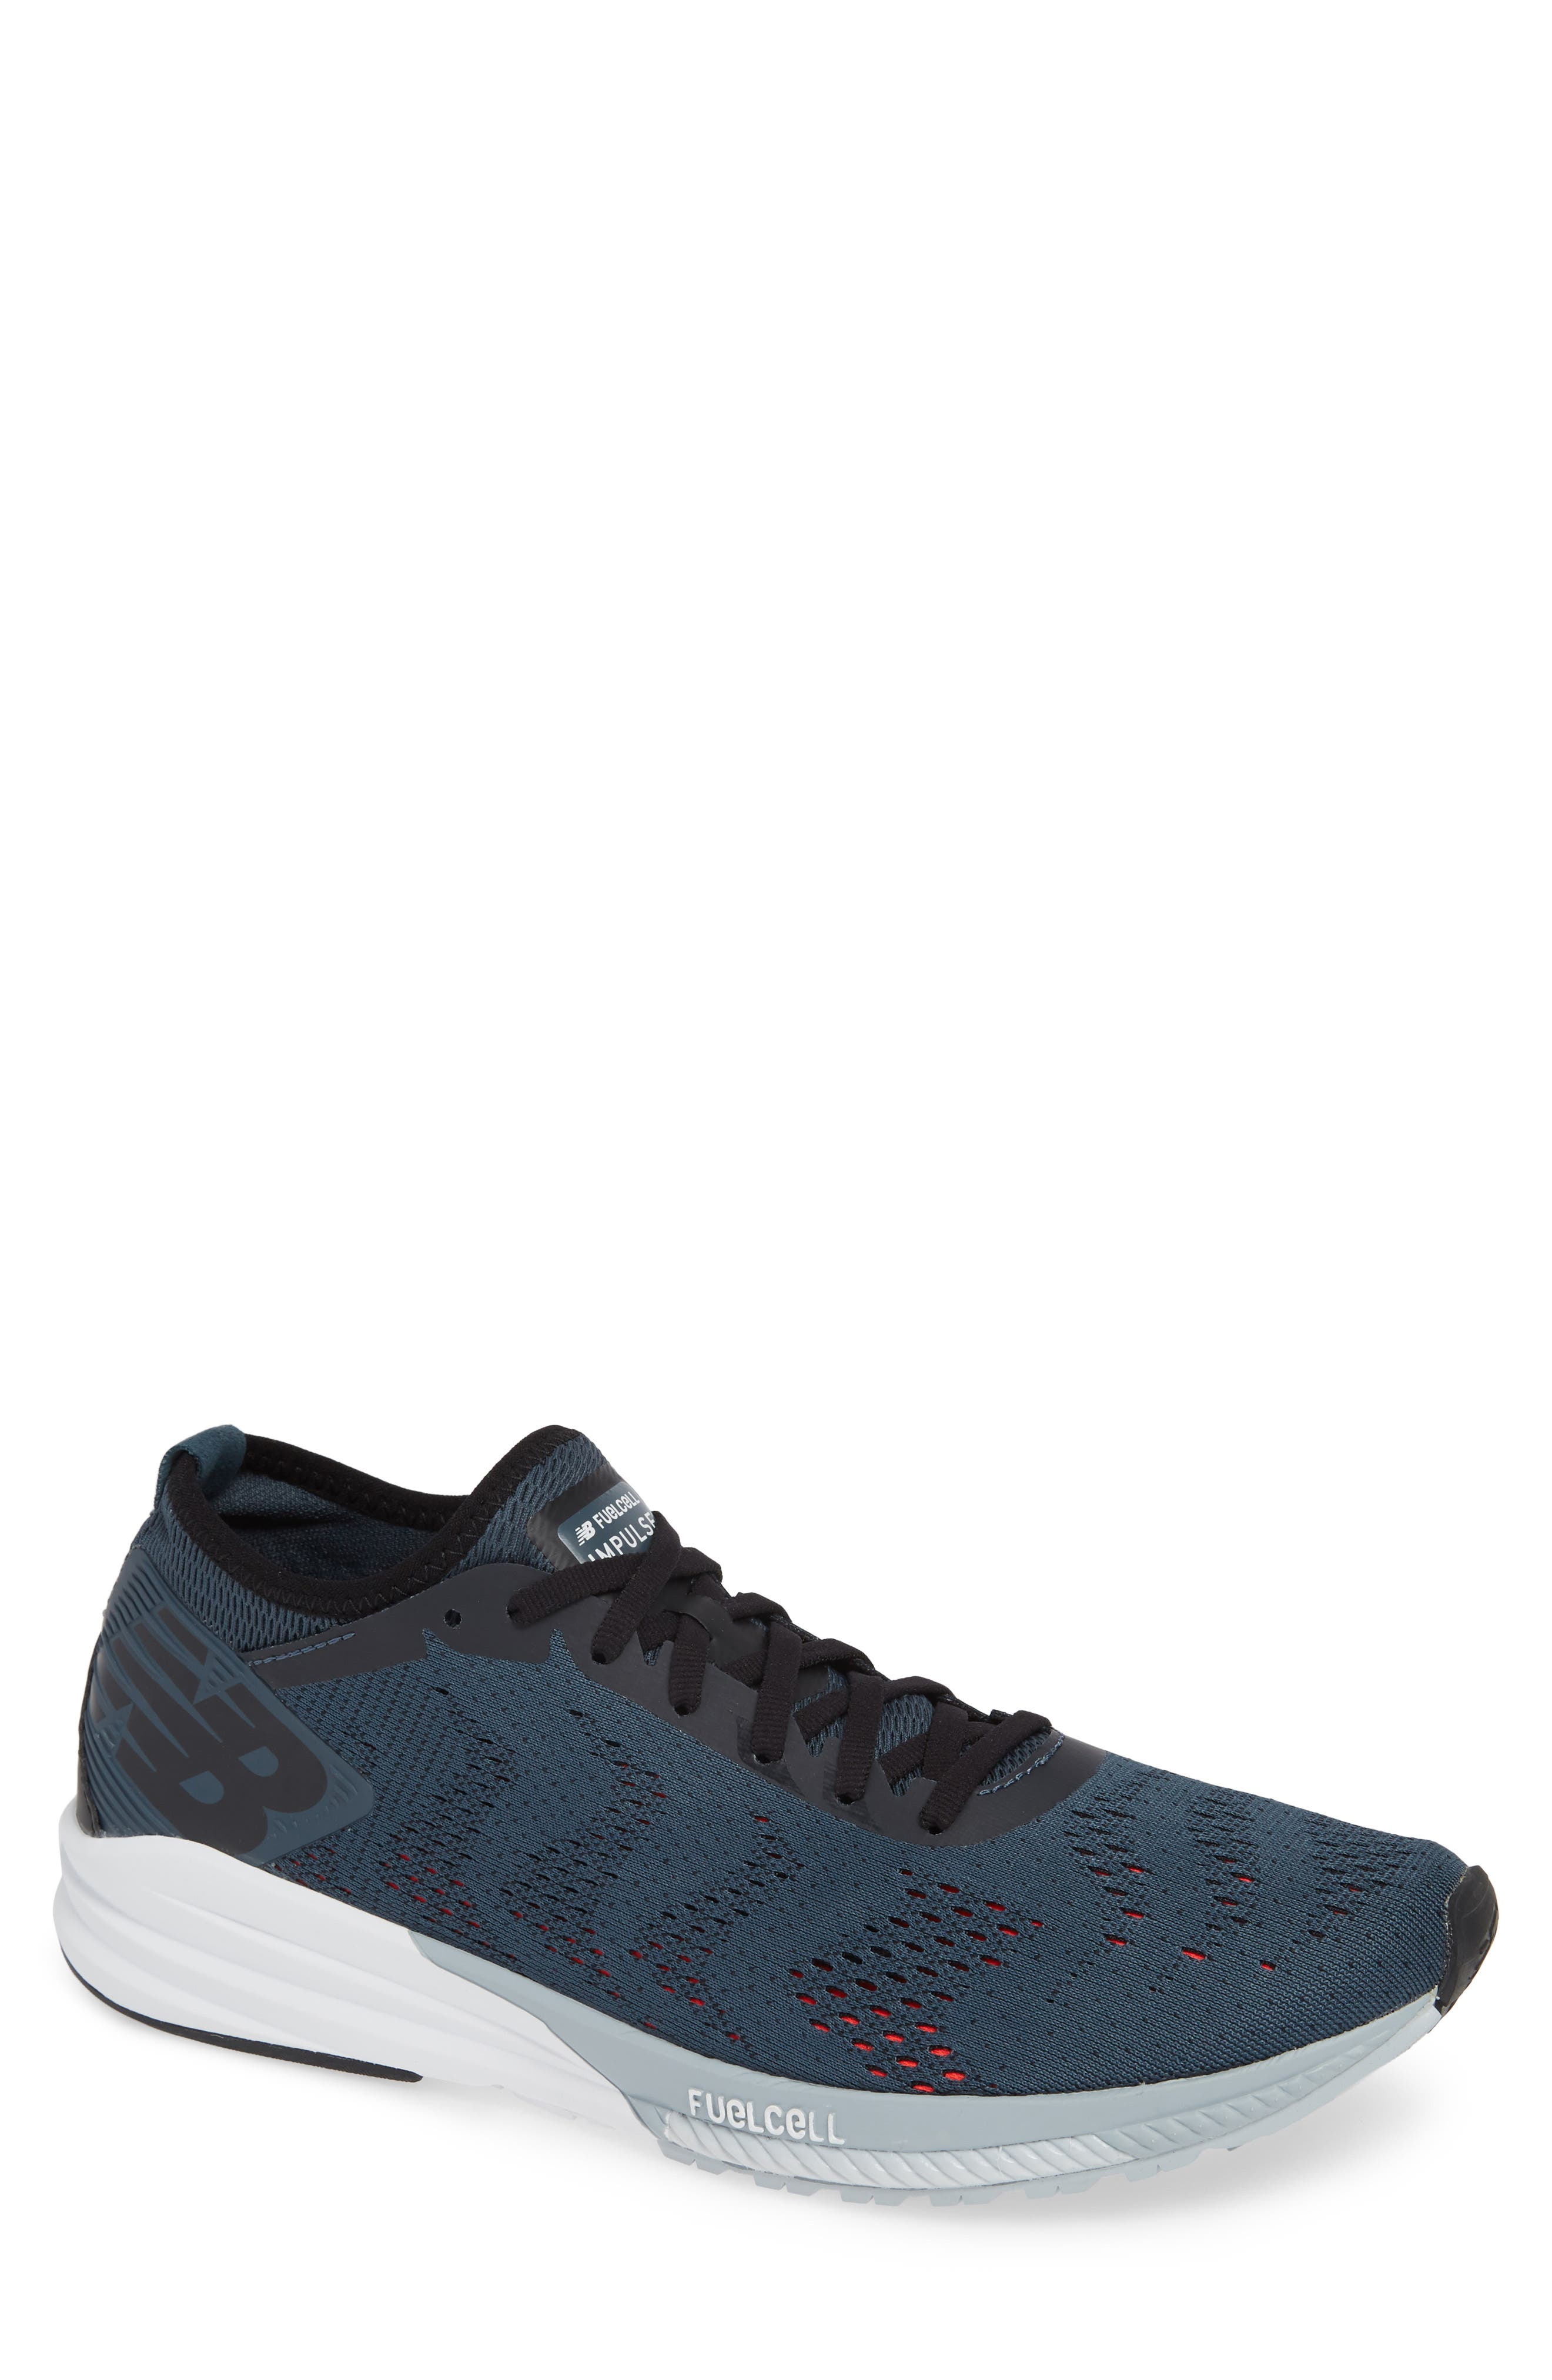 NEW BALANCE FuelCell Impulse Running Shoe, Main, color, PETROL